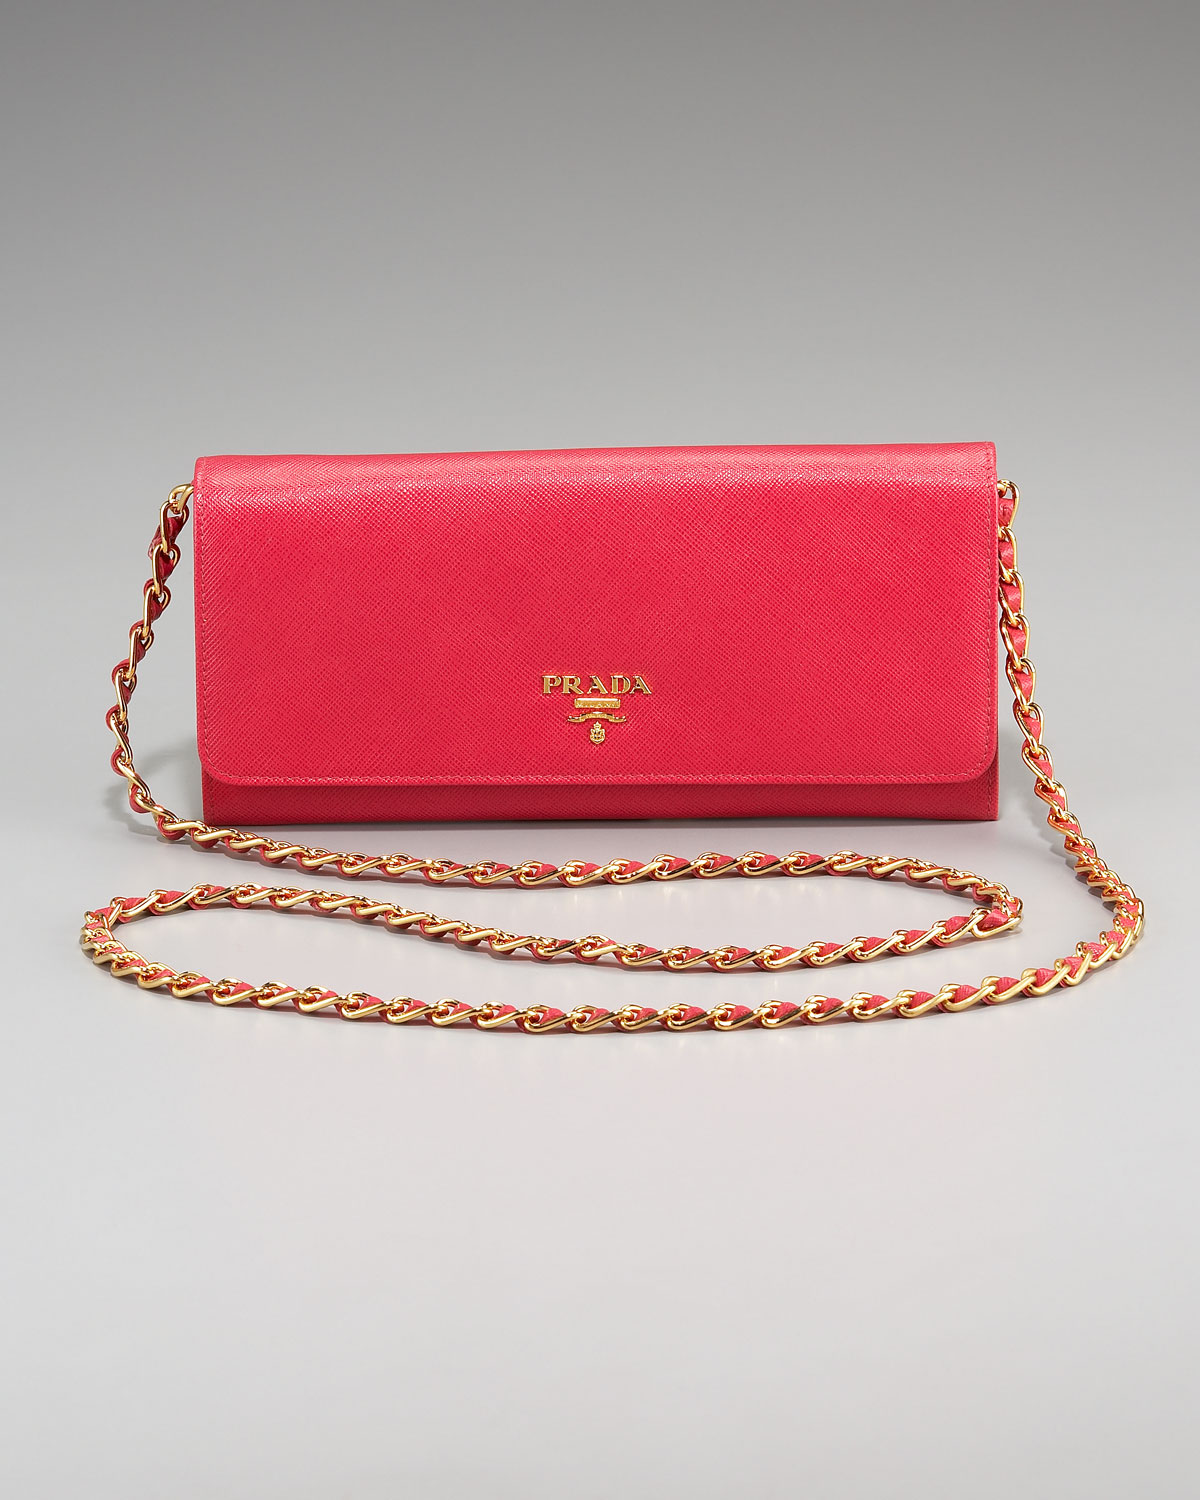 f9d83c3dbab6 spain prada black and red purse long checkbook wallet f868d 371d7  coupon  code for lyst prada saffiano chain crossbody wallet in red 16d8d e1eca